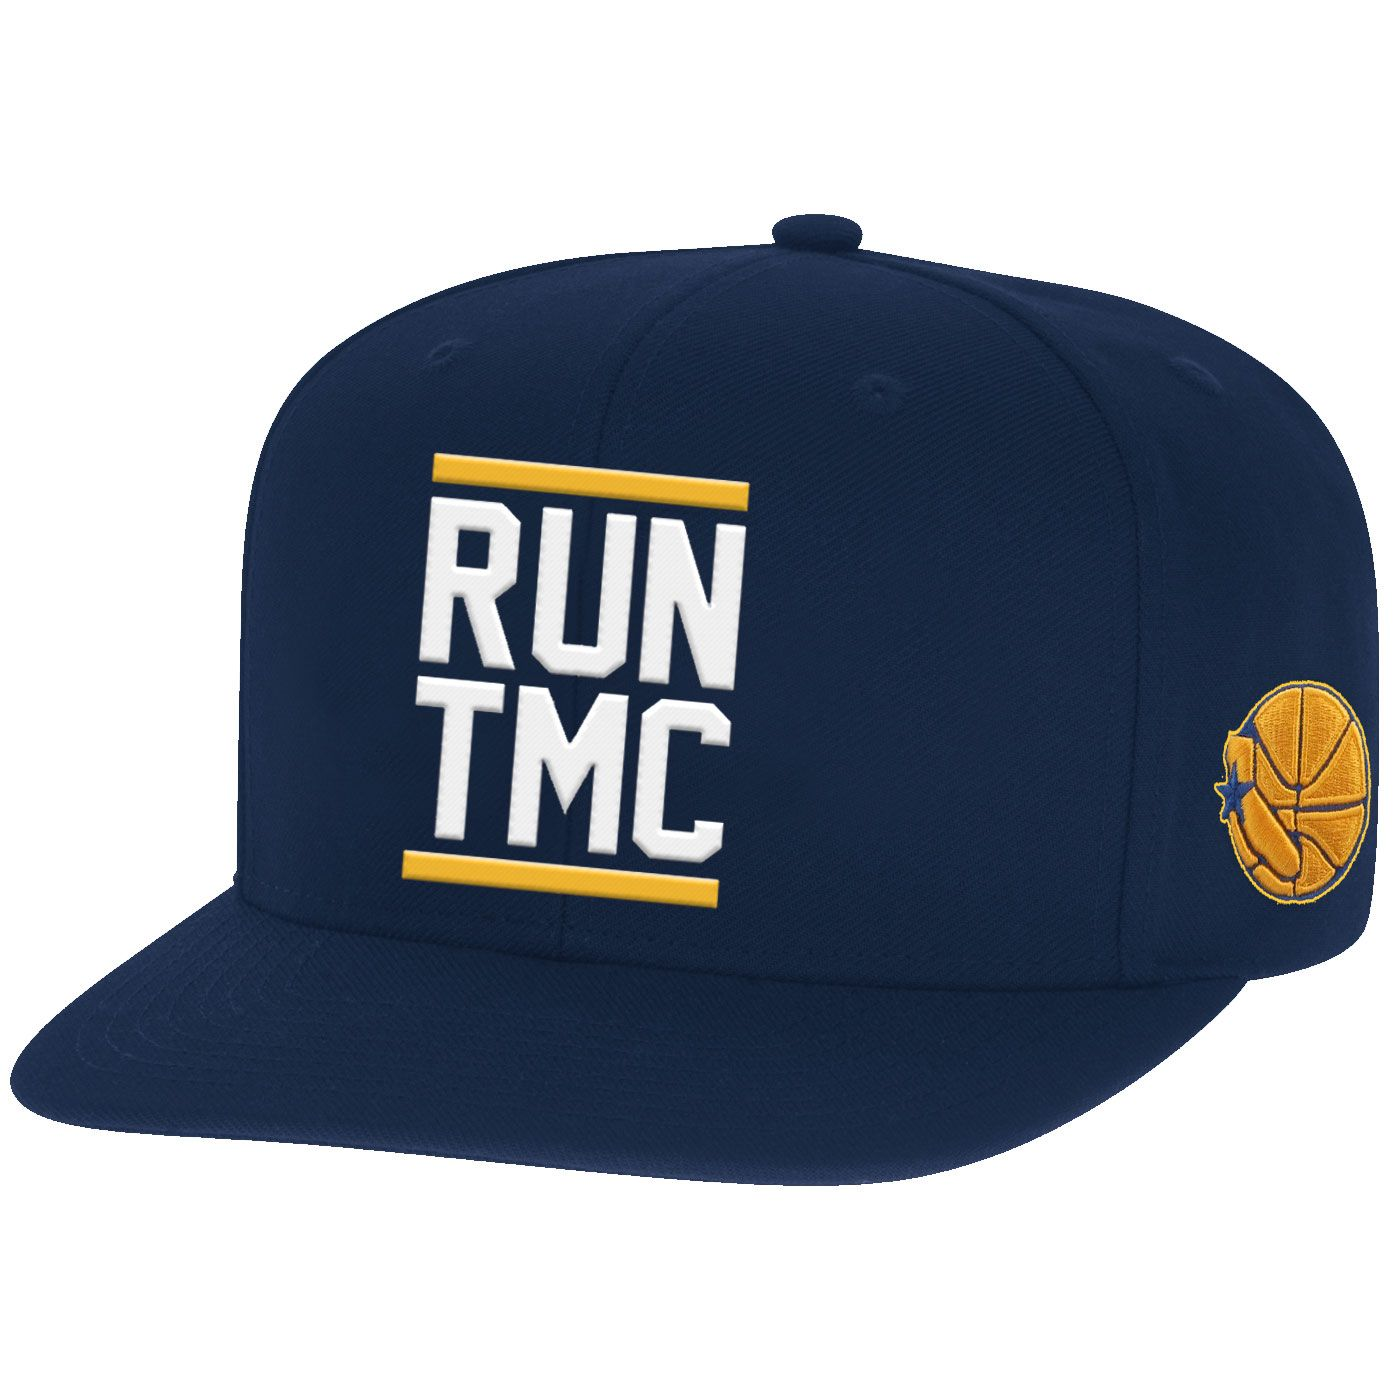 c34bf1a198efe1 Golden State Warriors Mitchell & Ness Hardwood Classics Run TMC Snapback Hat  - Navy - Golden State Warriors - Official Online Store